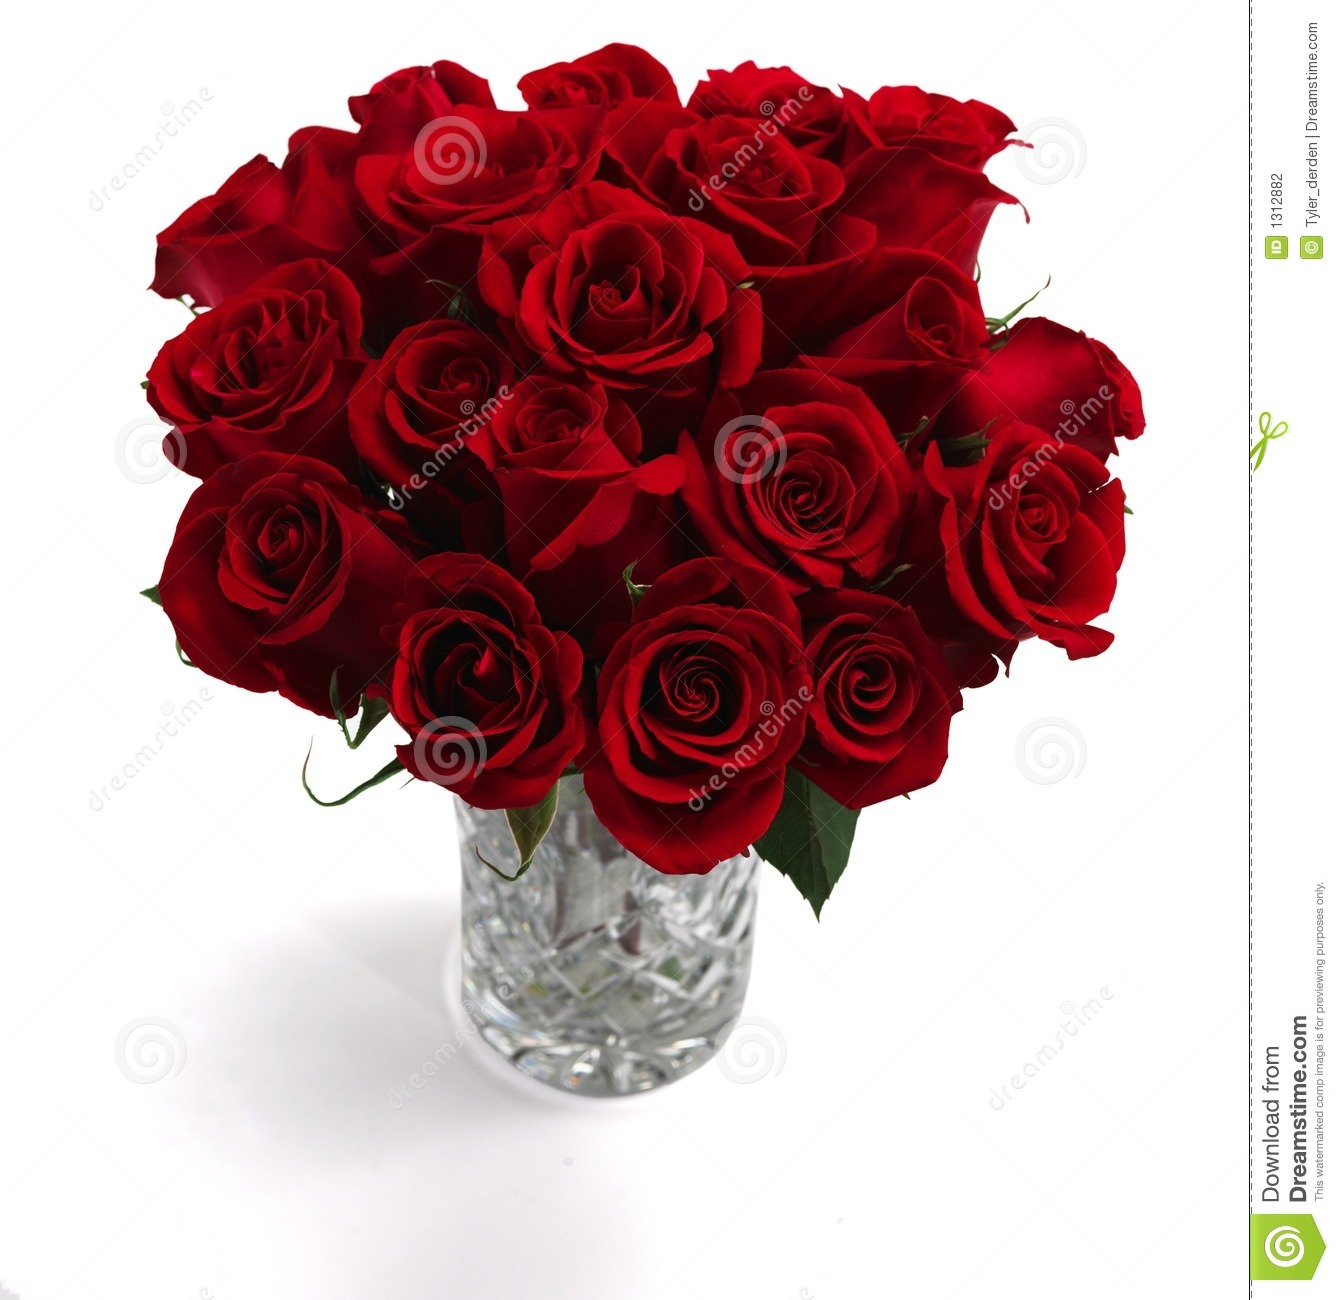 Rosses Stock Photography - Image: 1312882